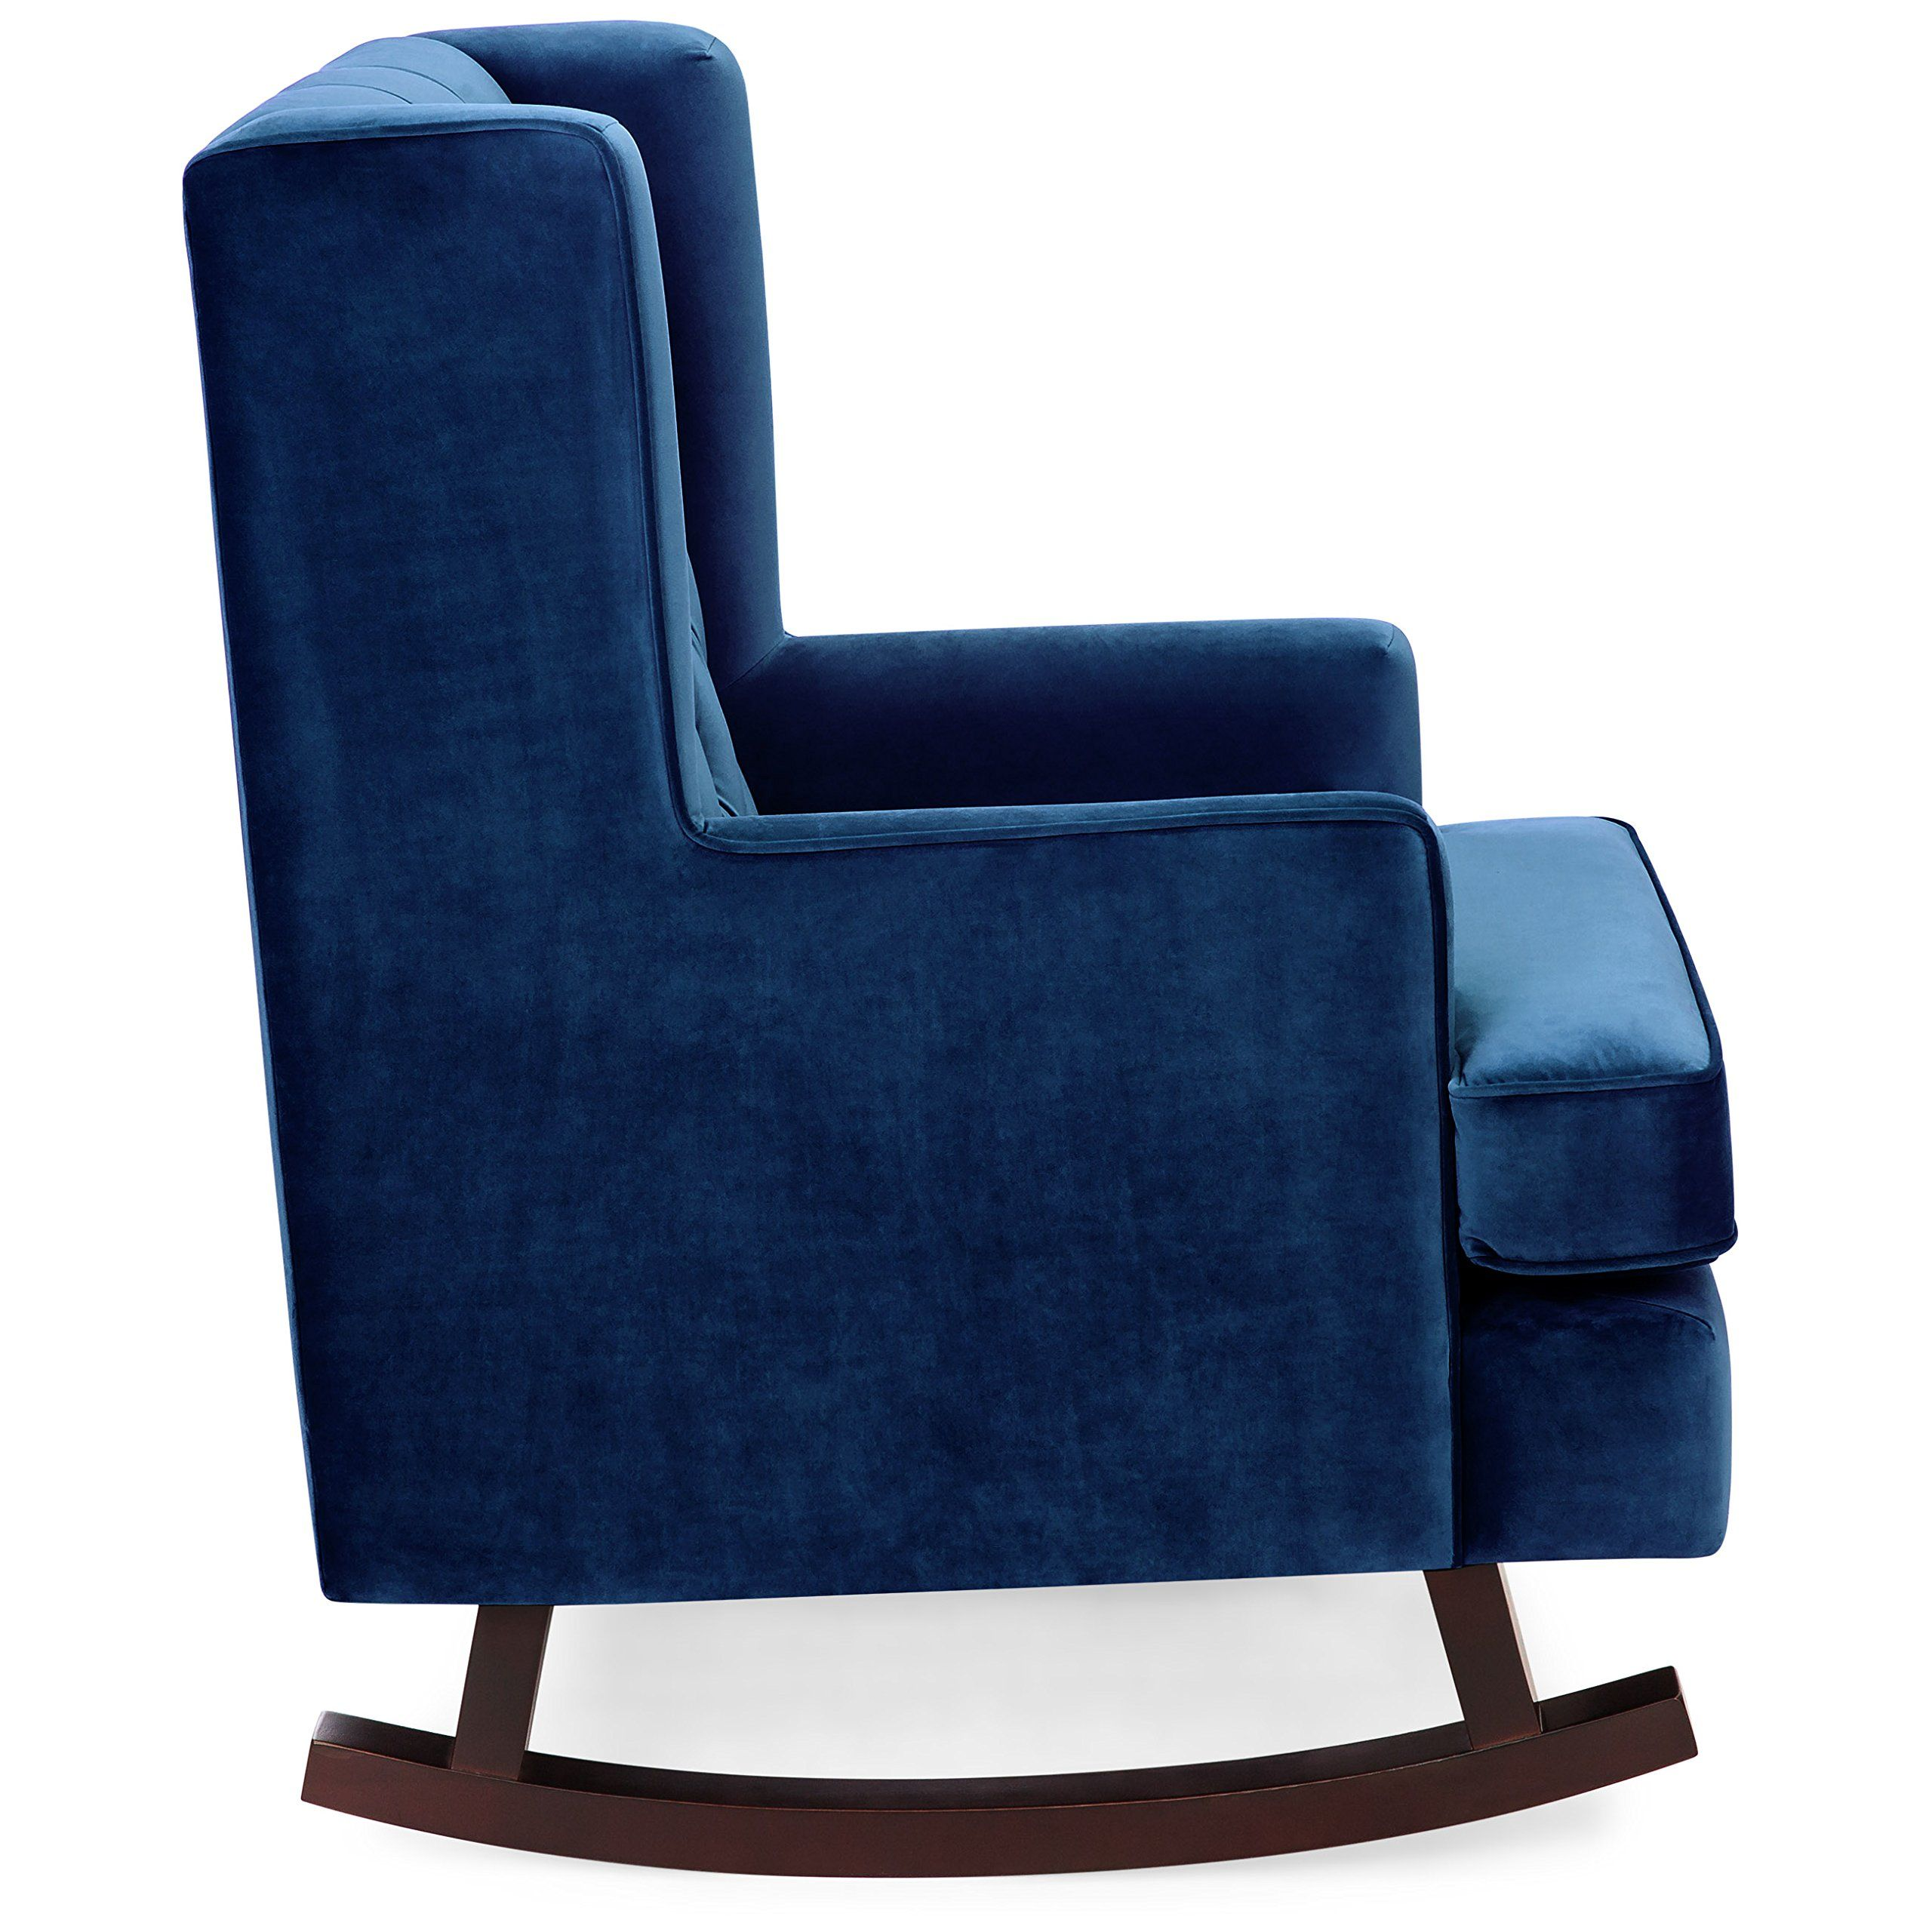 Rocking Accent Chairs Best Choice Products Tufted Luxury Velvet Wingback Rocking Accent